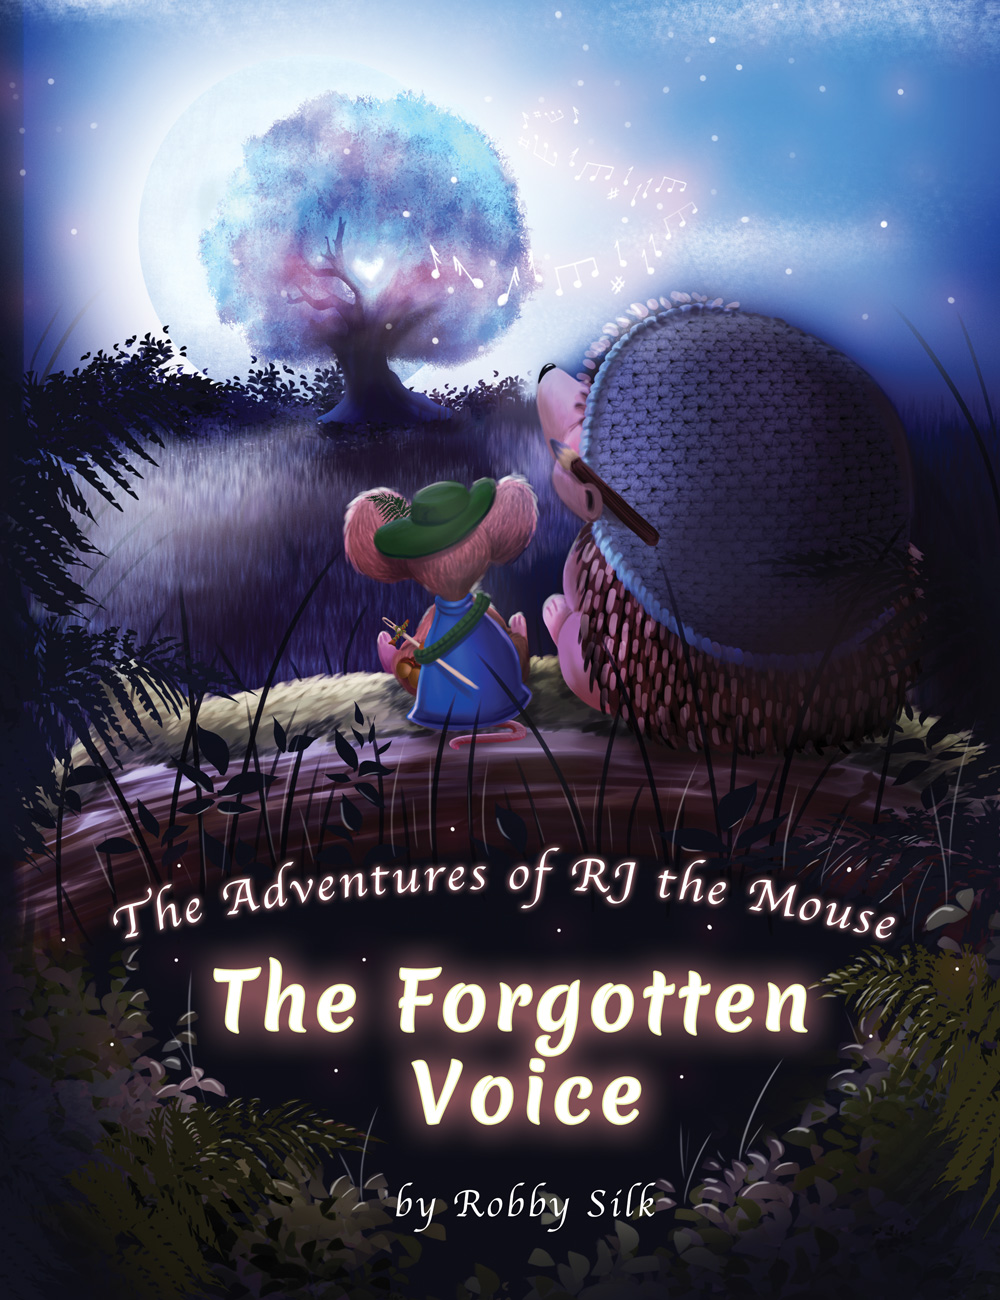 The Adventures of RJ the Mouse: The Forgotten Voice - When RJ the Mouse hears a sad cry in the woods, he has a choice to make, continue on his way, or stop and help? A simple act of kindness can change a life. Armed with his courage, patience, and love RJ helps Tek, an elderly hedgehog, on an adventure that spans a lifetime. He learns courage isn't always about heroic deeds, but simple ones that put others first. Together they set out, but will they discover the forgotten voice in Tek's heart...Buy on Amazon!Buy on Barnes & Noble!